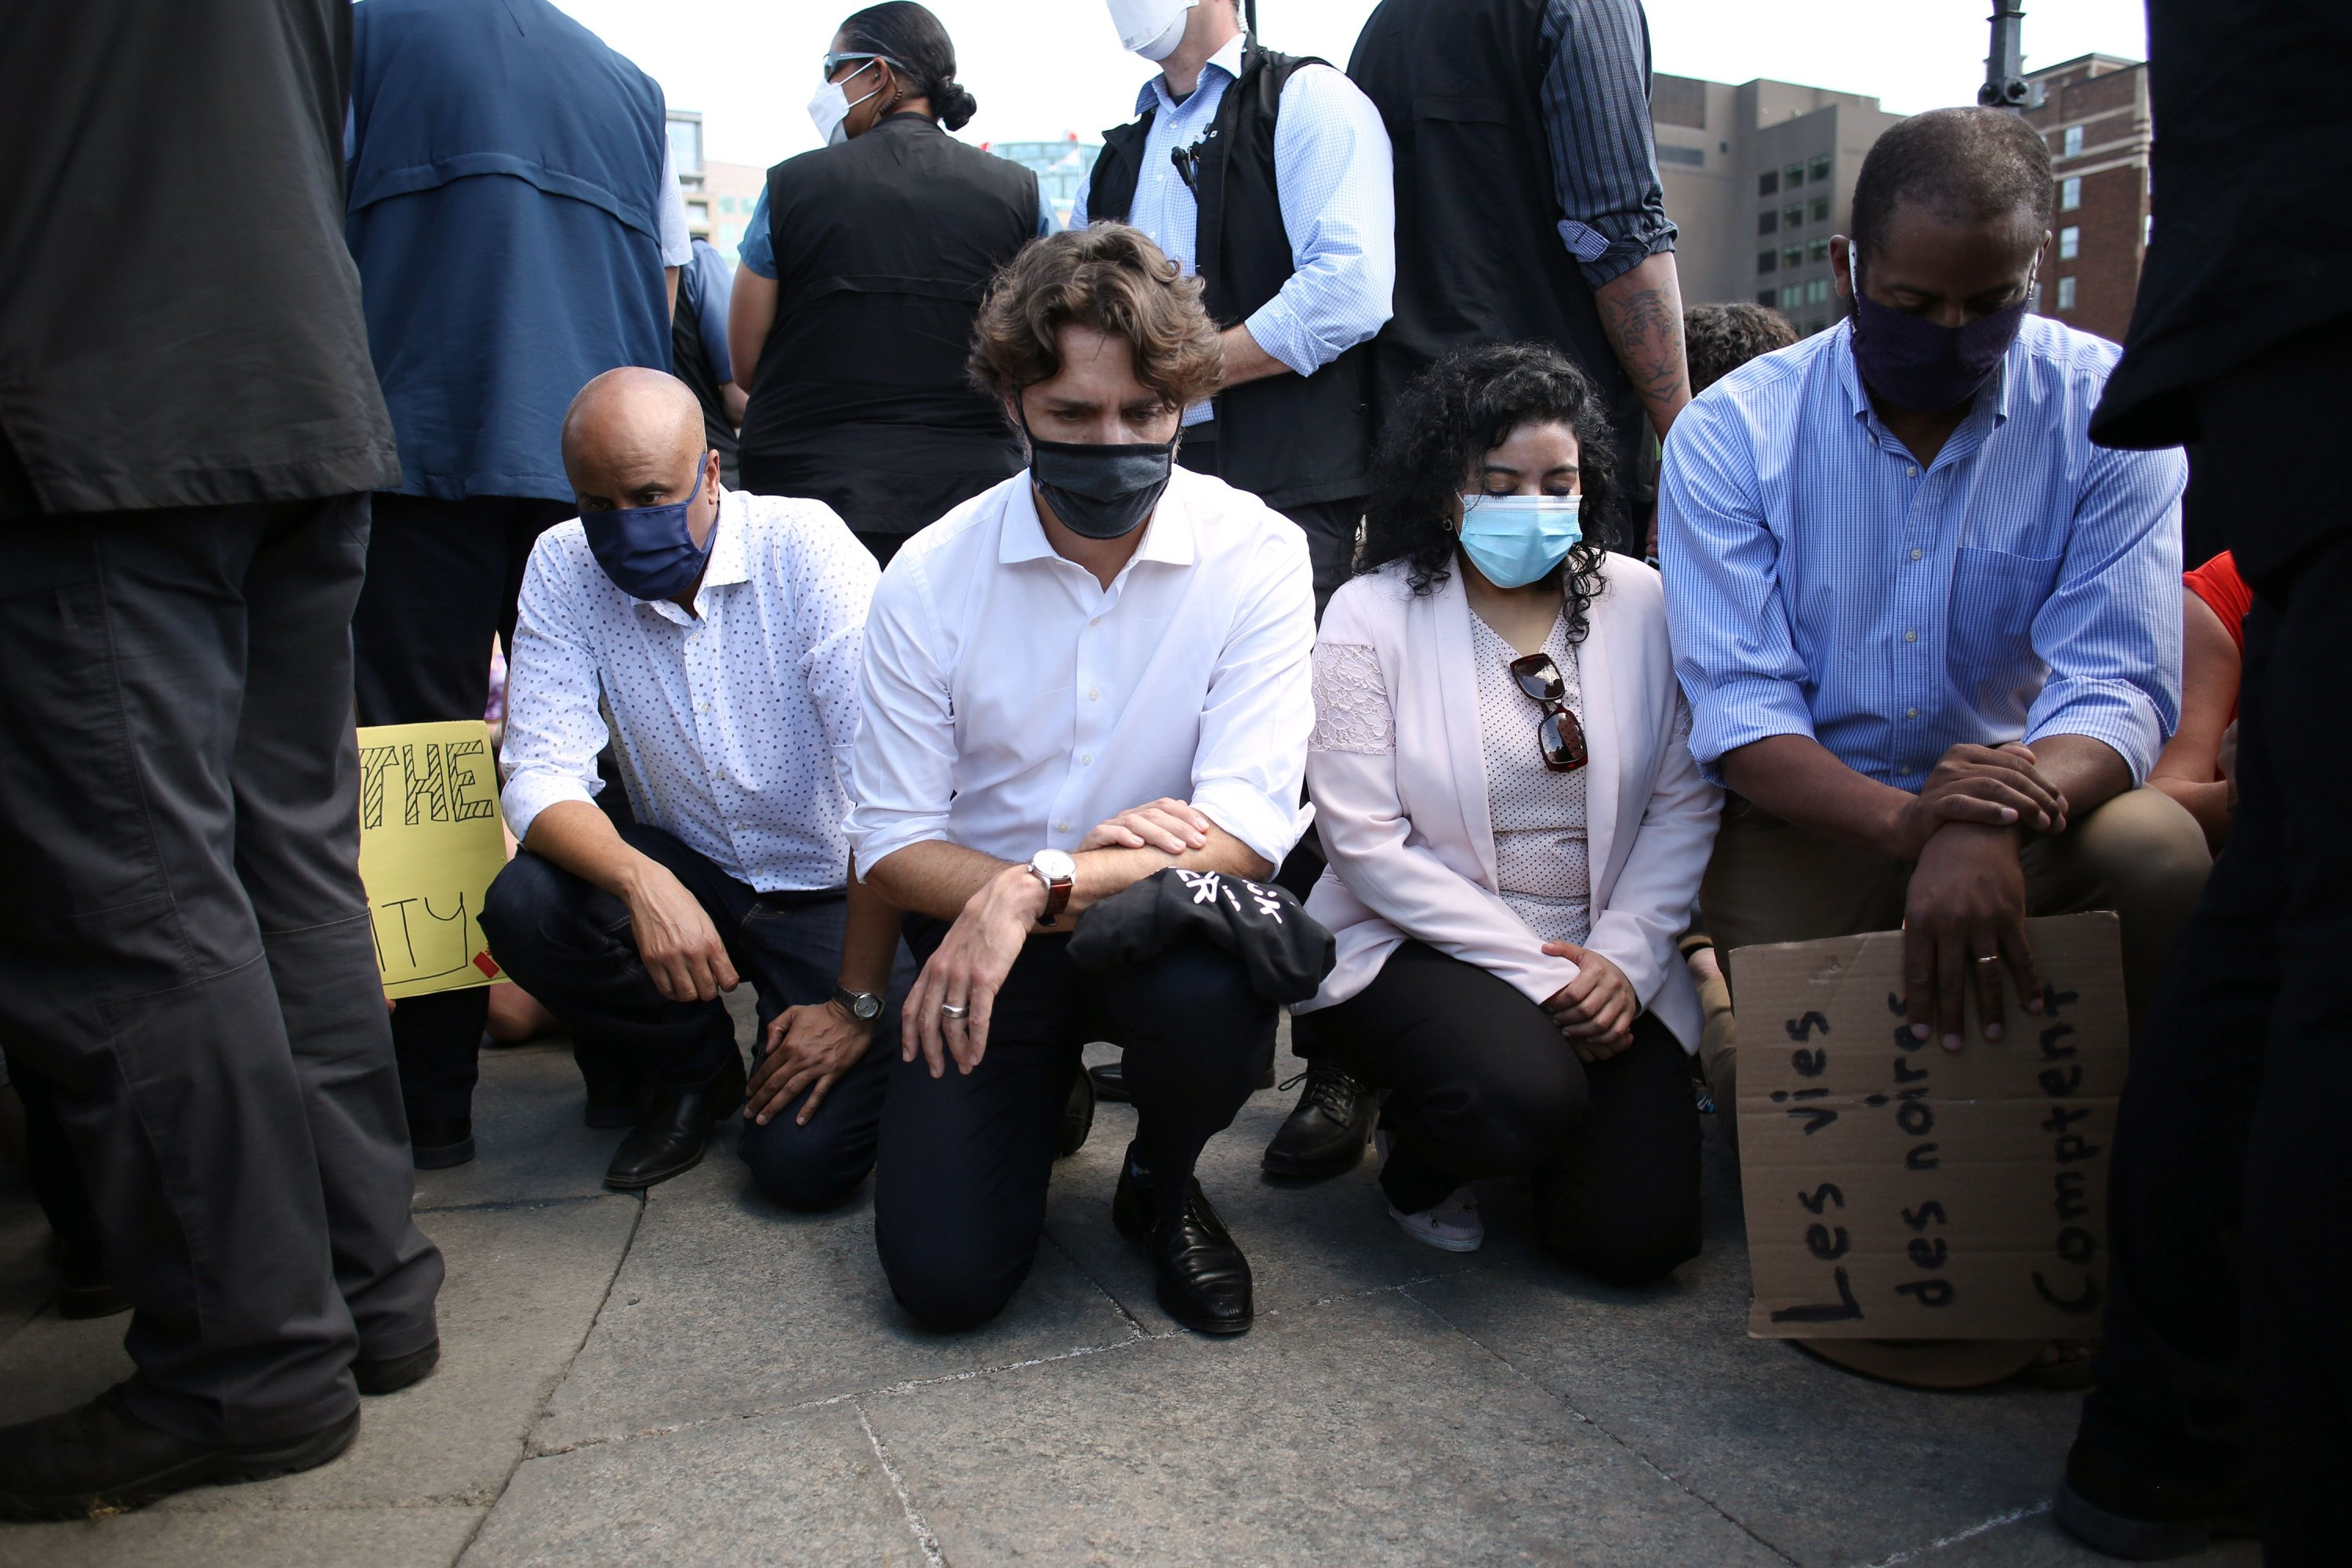 Canadian Prime Minister Justin Trudeau takes a knee during a Black Lives Matter protest on Parliament Hill, Ottawa, June 5, 2020. (AFP Photo)